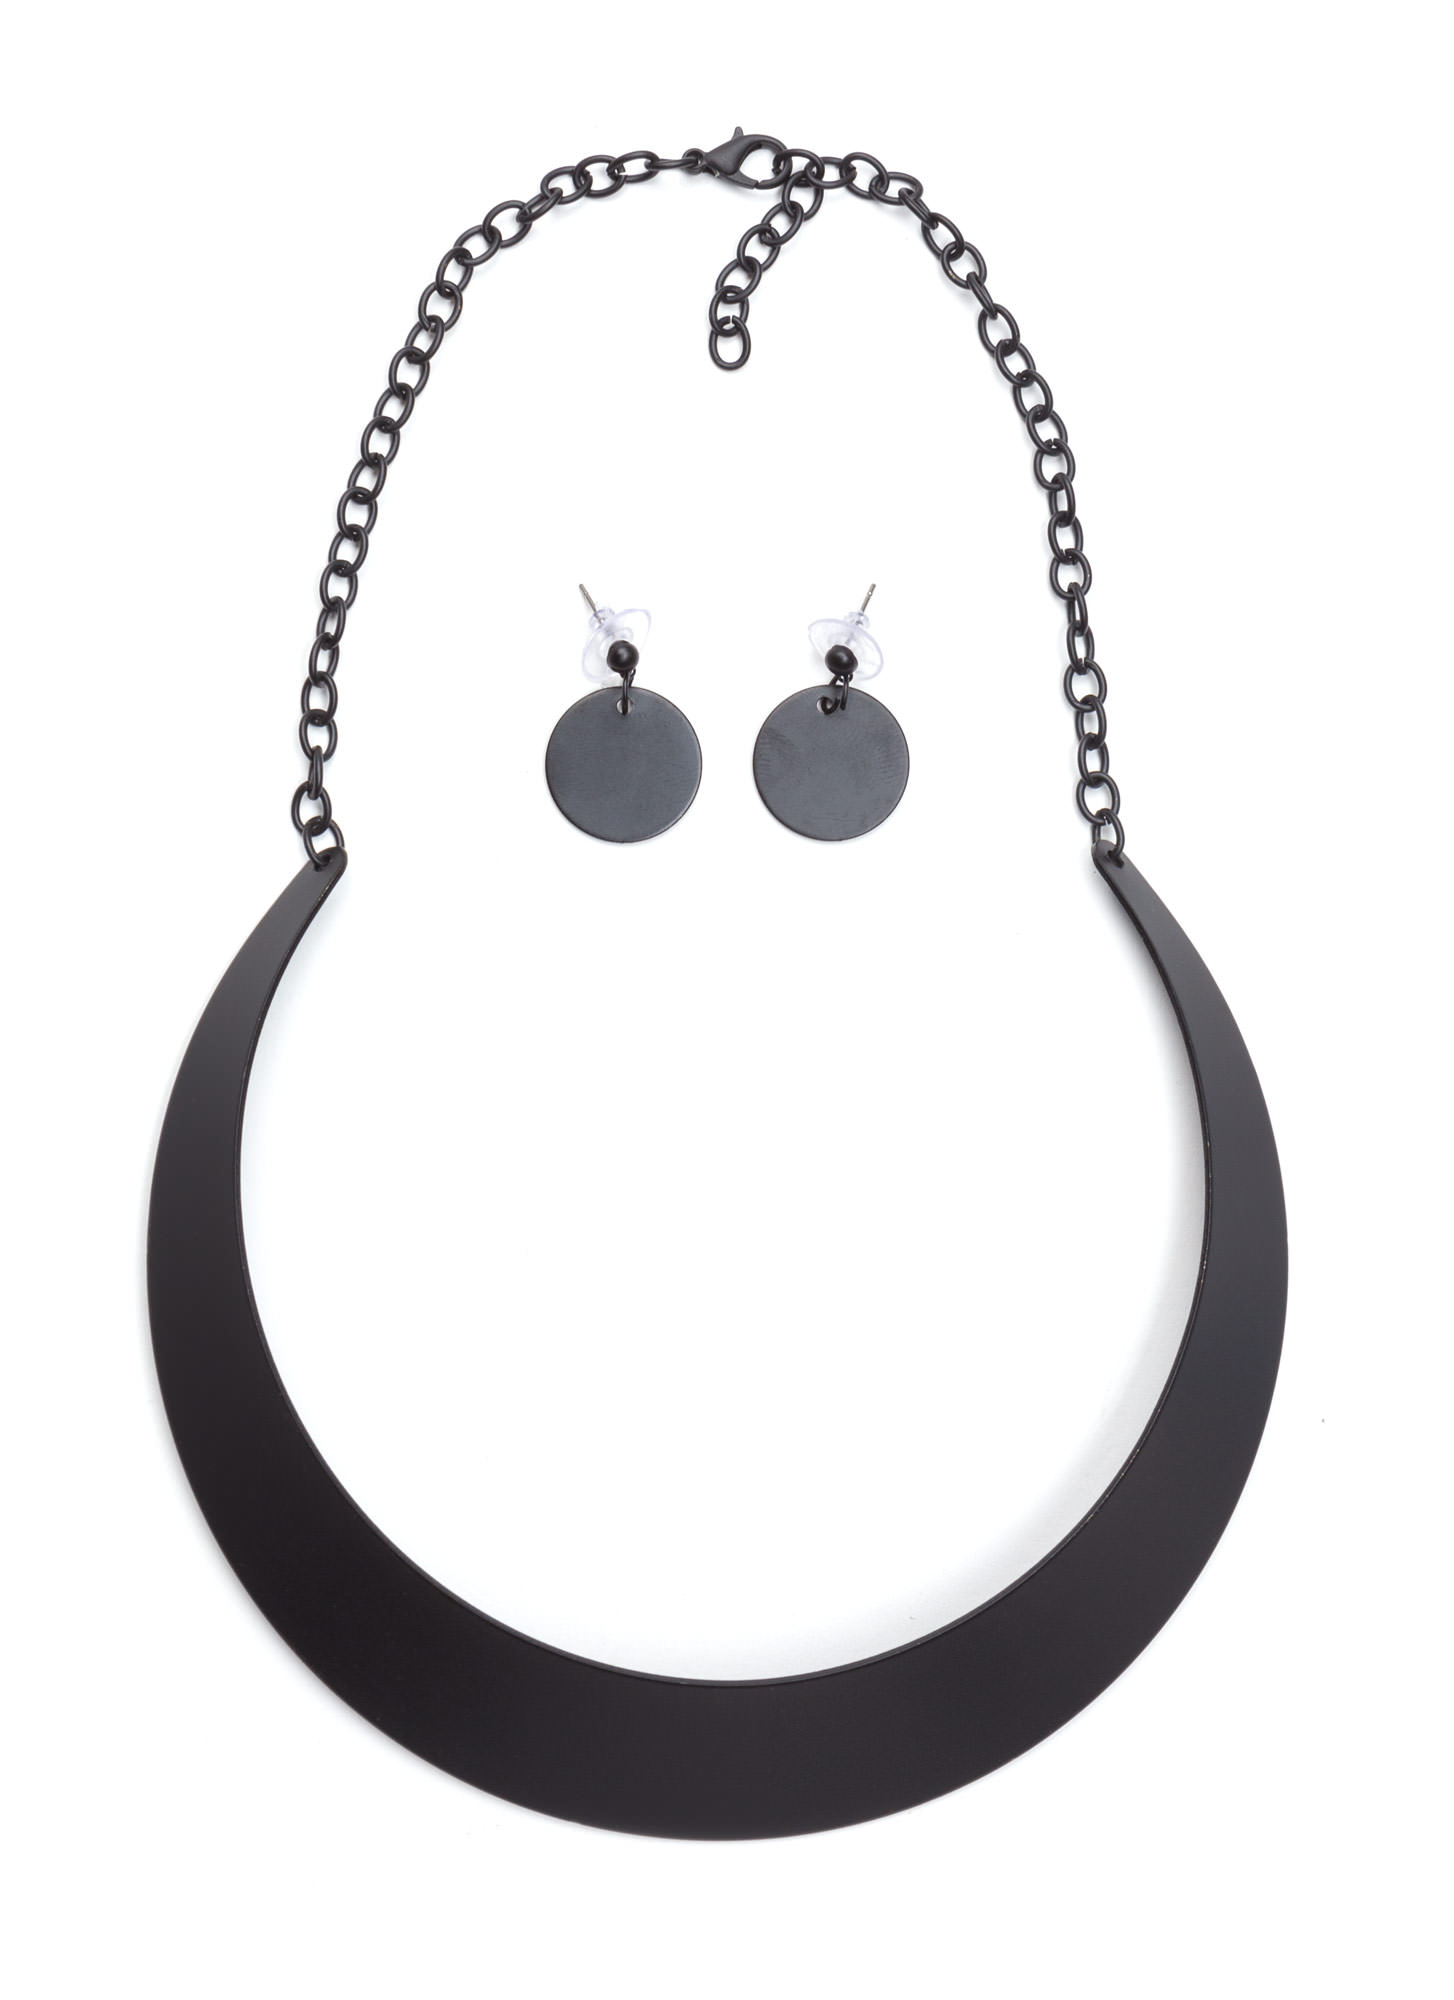 Shiny Metal Collar Necklace Set MATTEBLACK